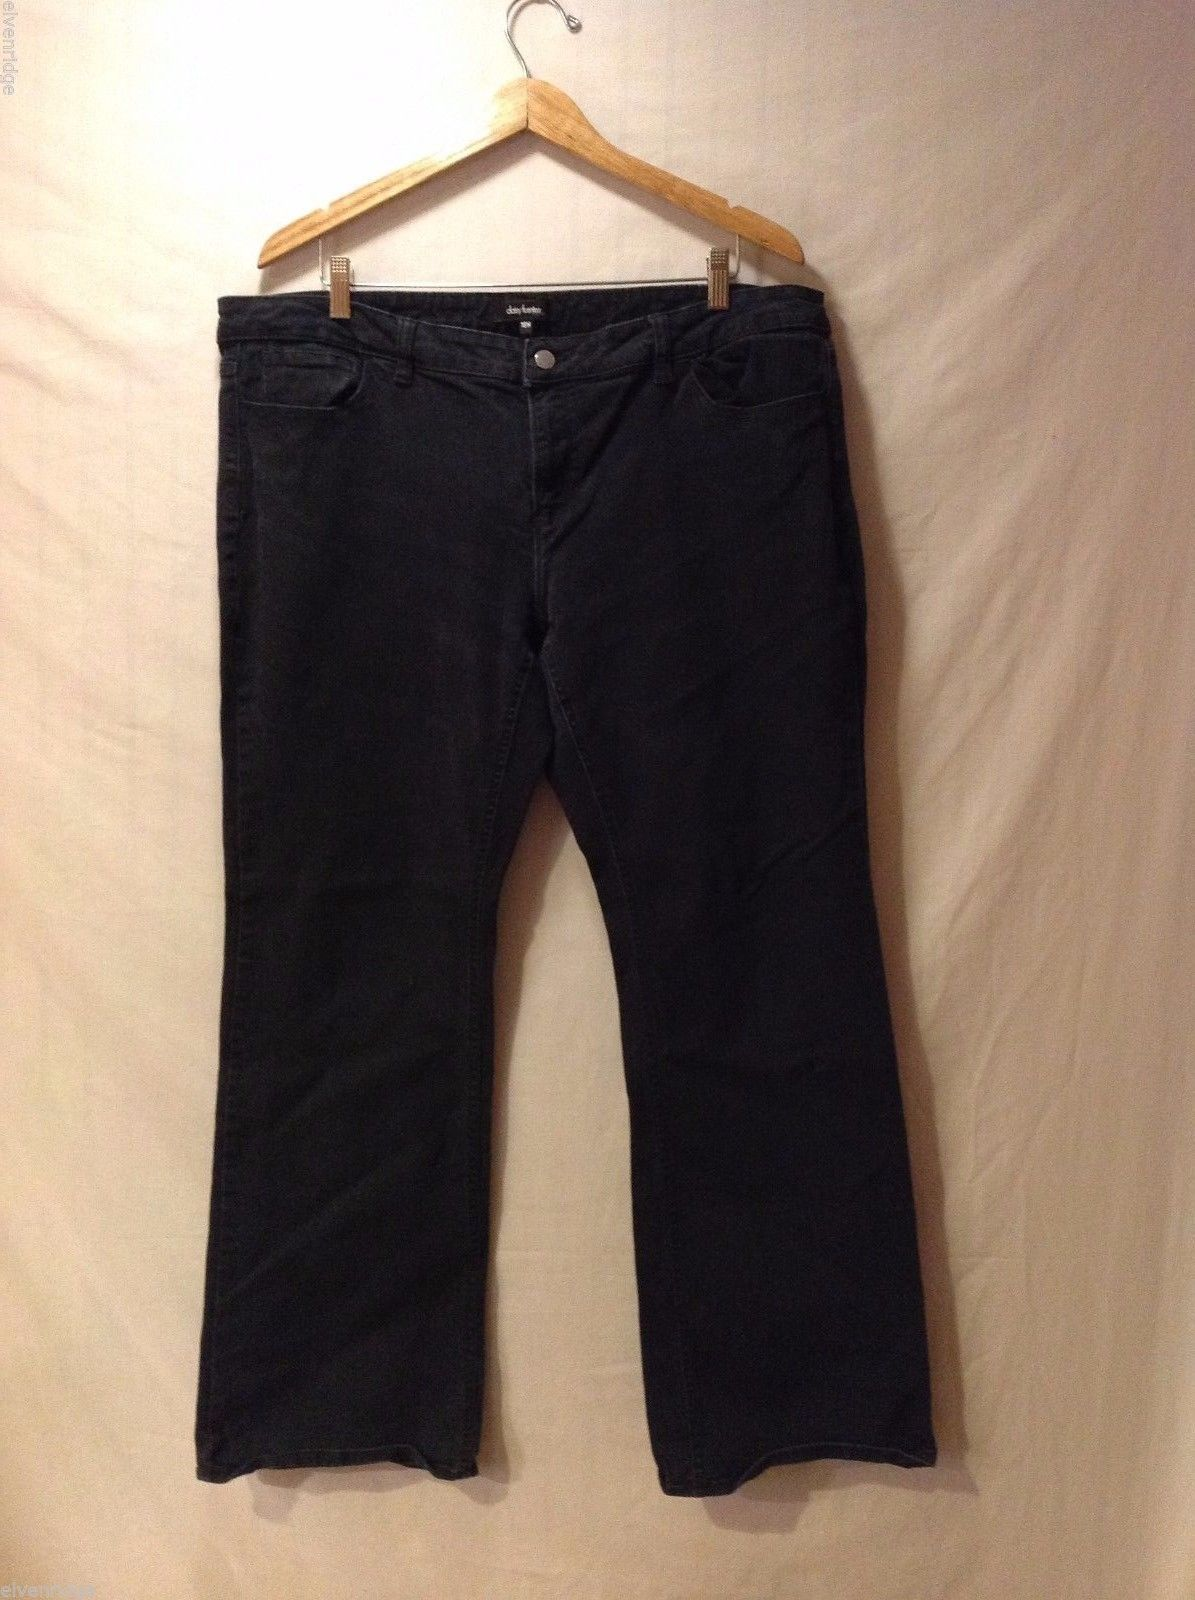 Daisy Fuentes Womens Black Denim Jeans, Size 18W